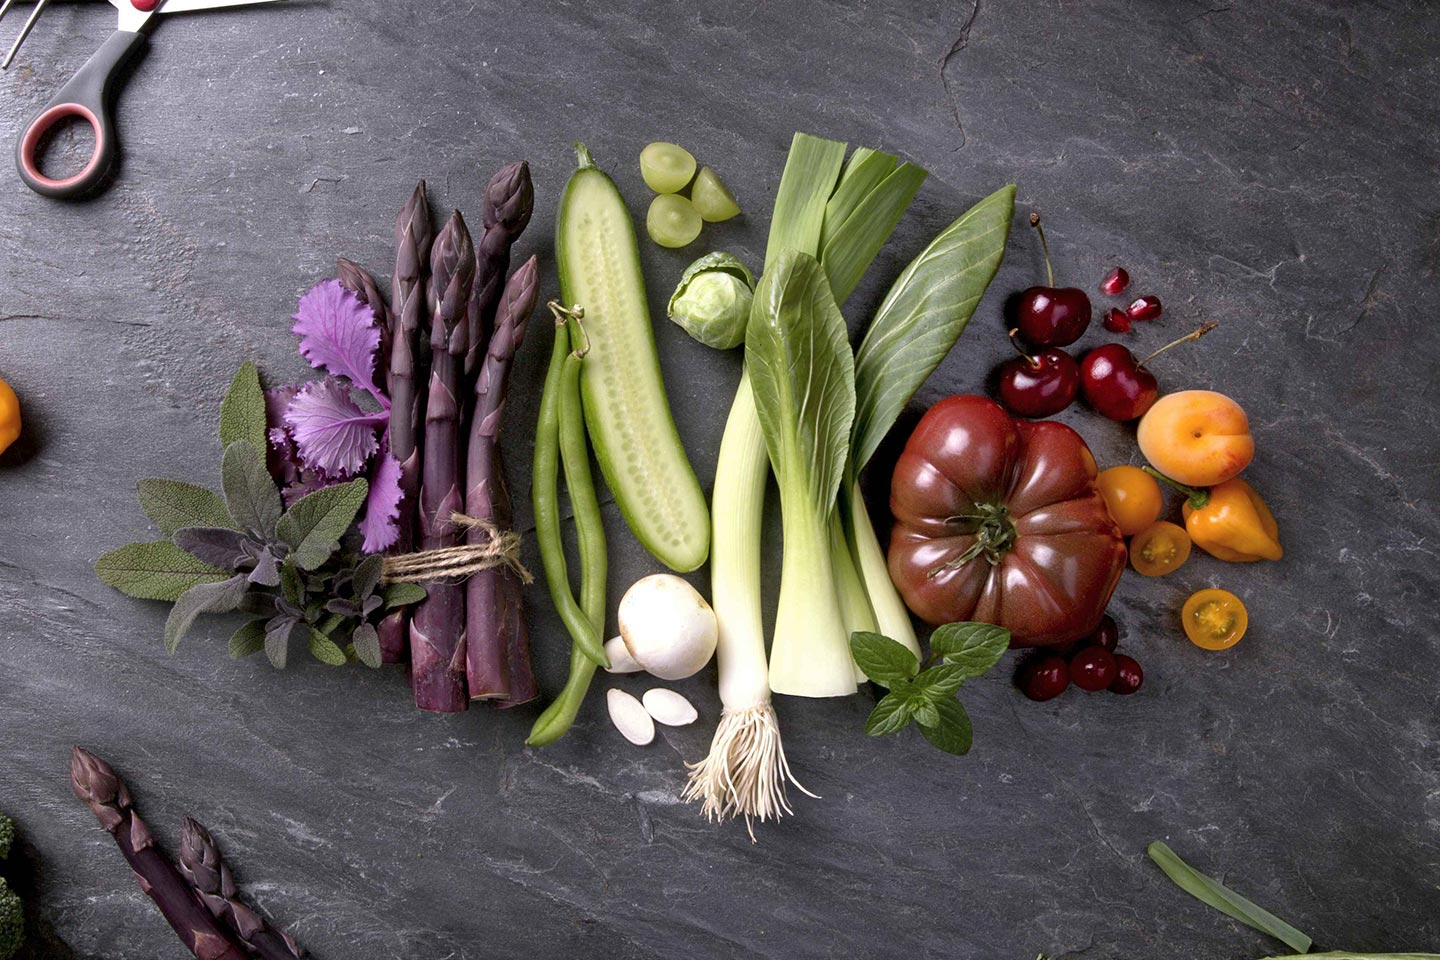 Phytonutrients Matter - So Get Your 5!